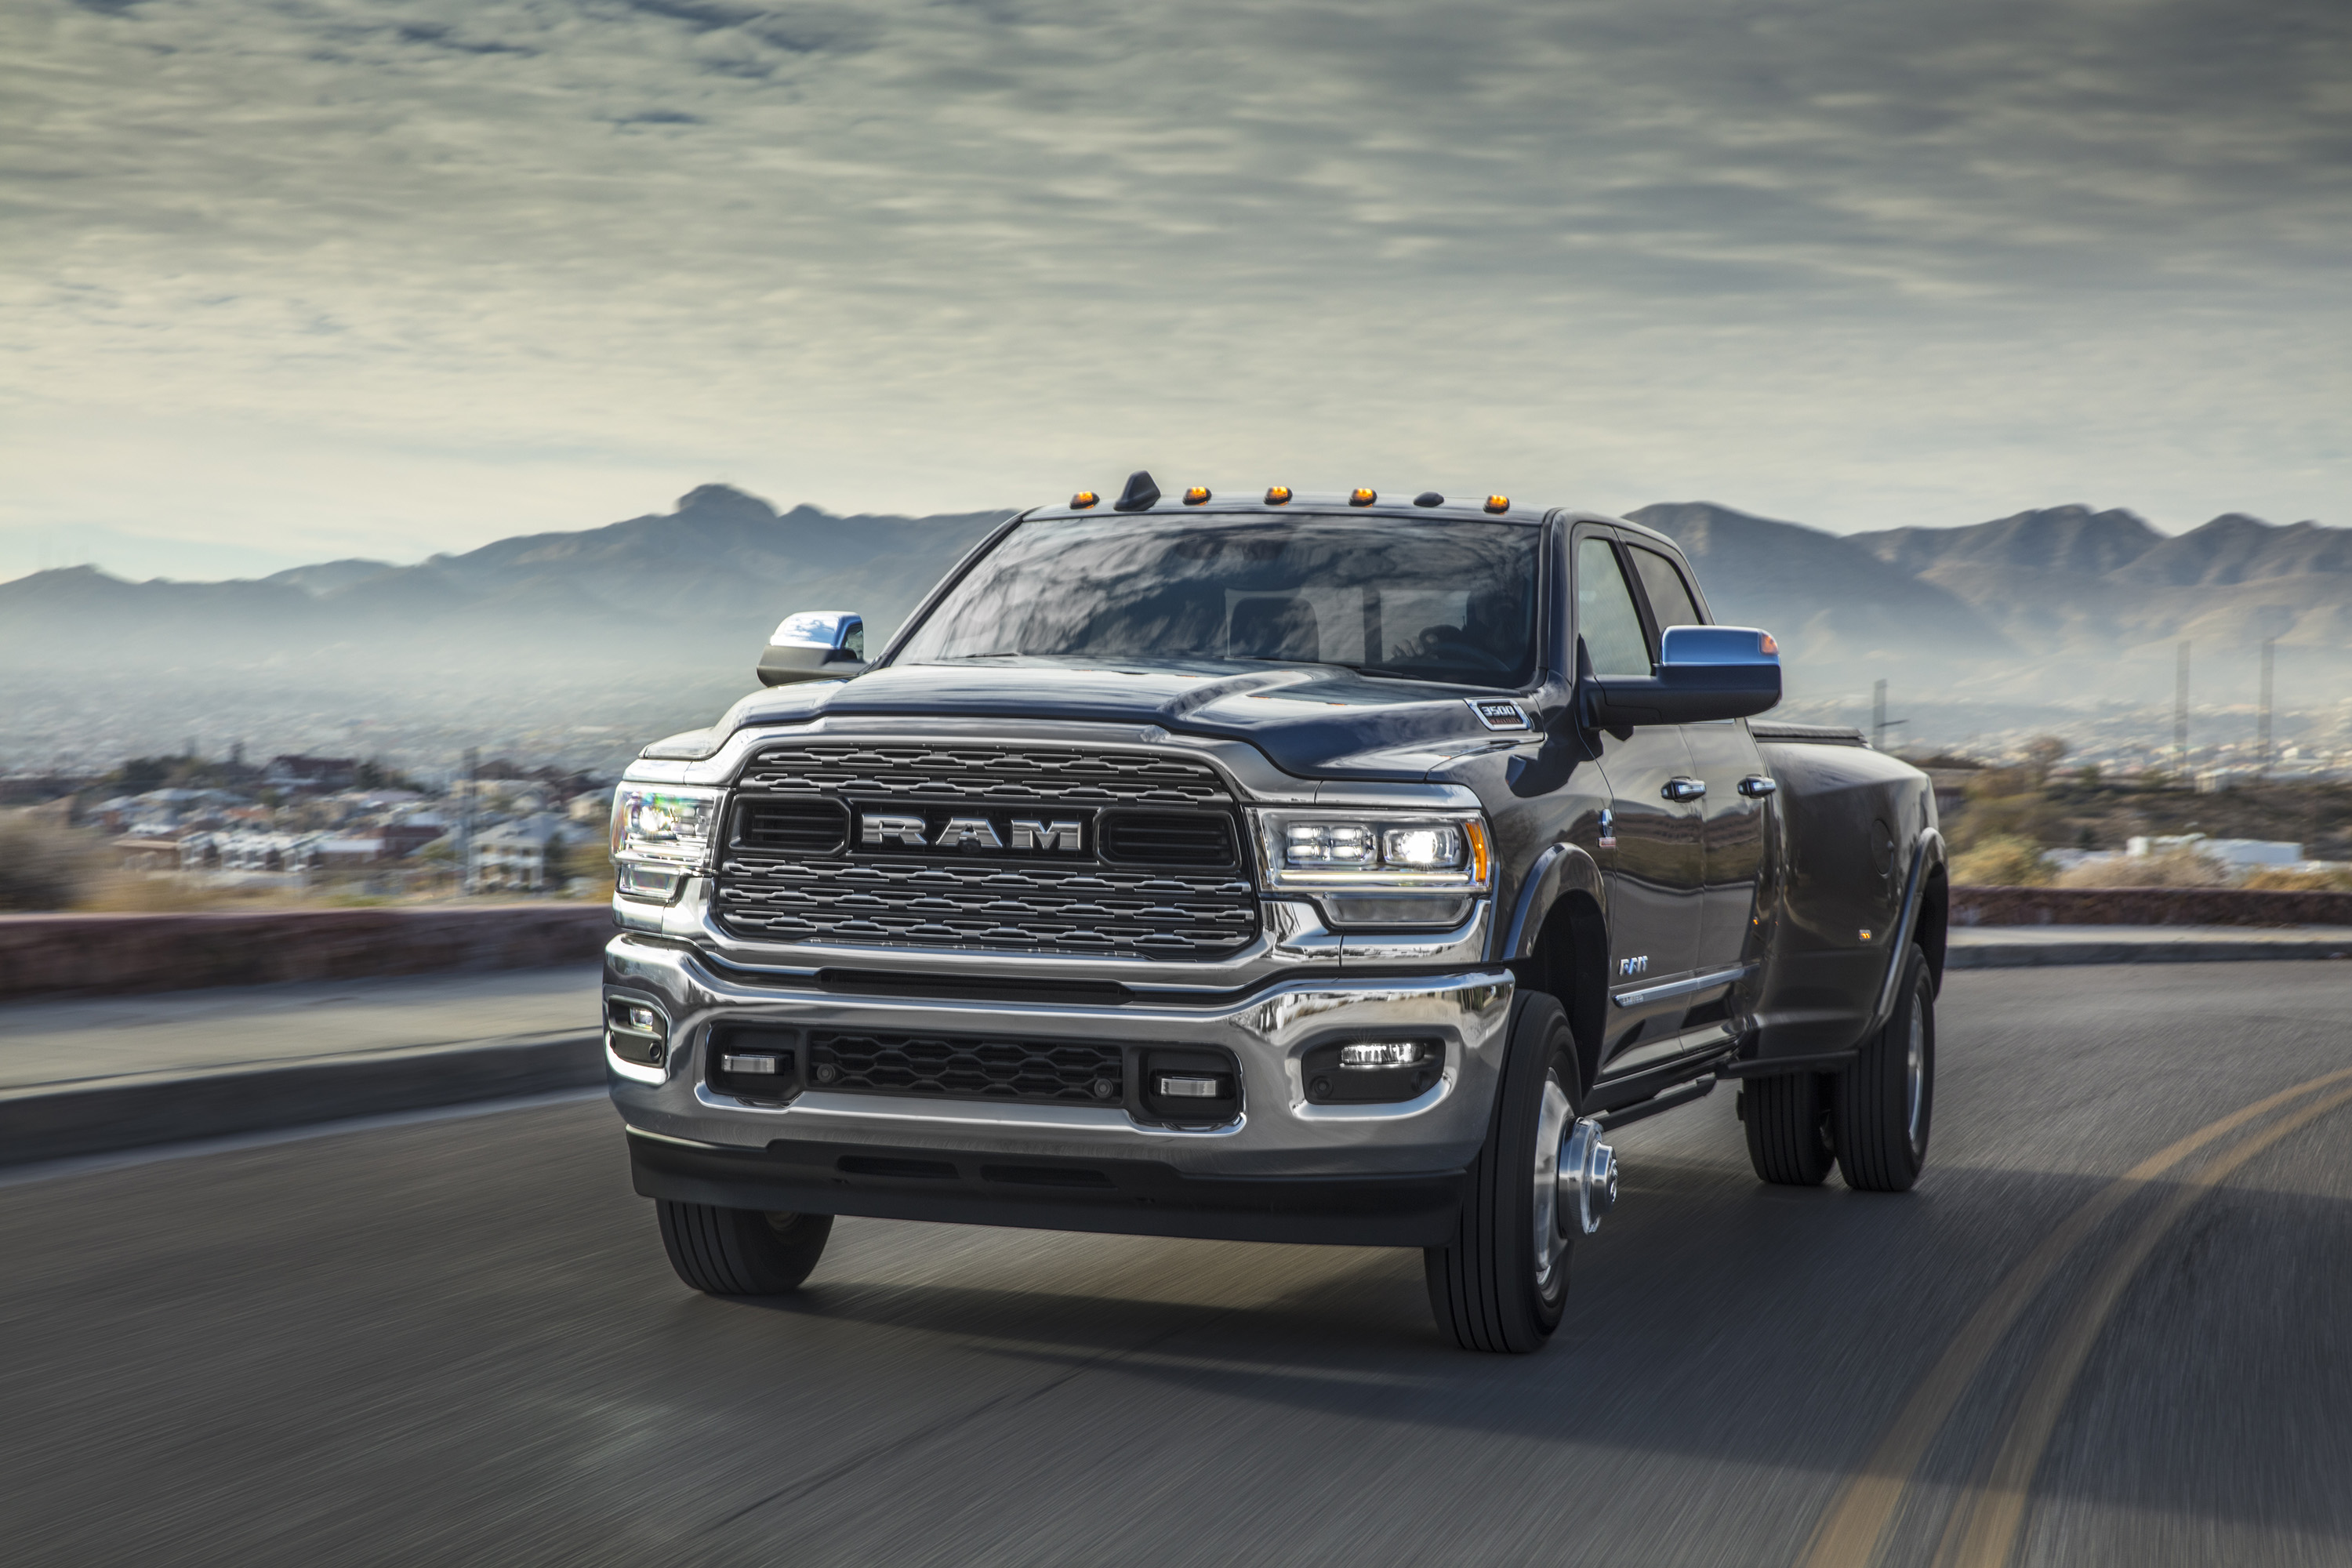 2019 Ram 3500 Heavy Duty Limited Crew Cab Dually Front Wallpaper (15)